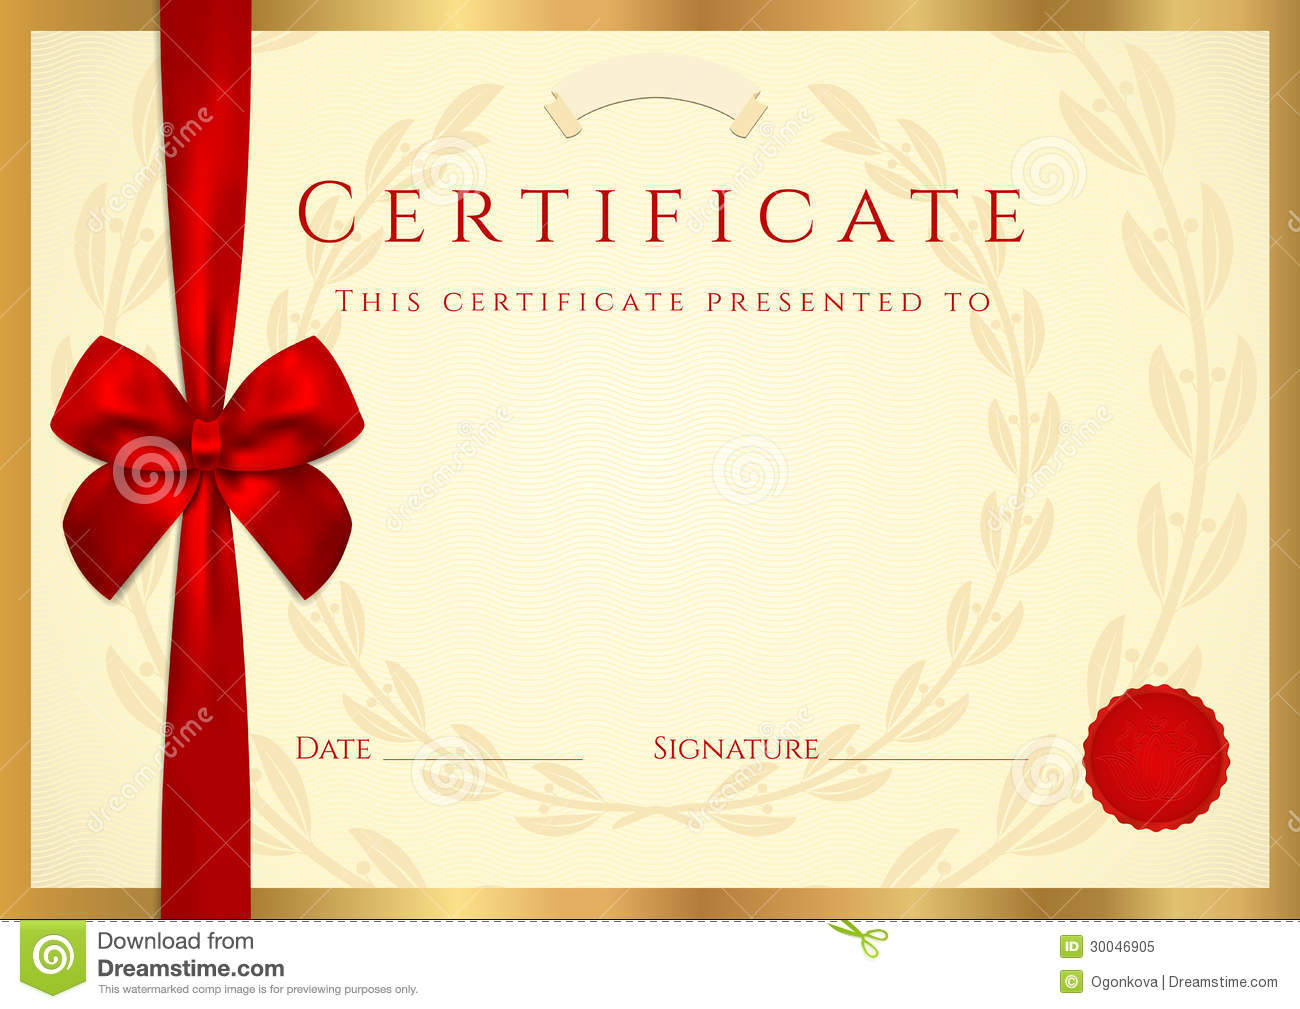 Certificate Designs Free form templates free – Download Certificate Templates